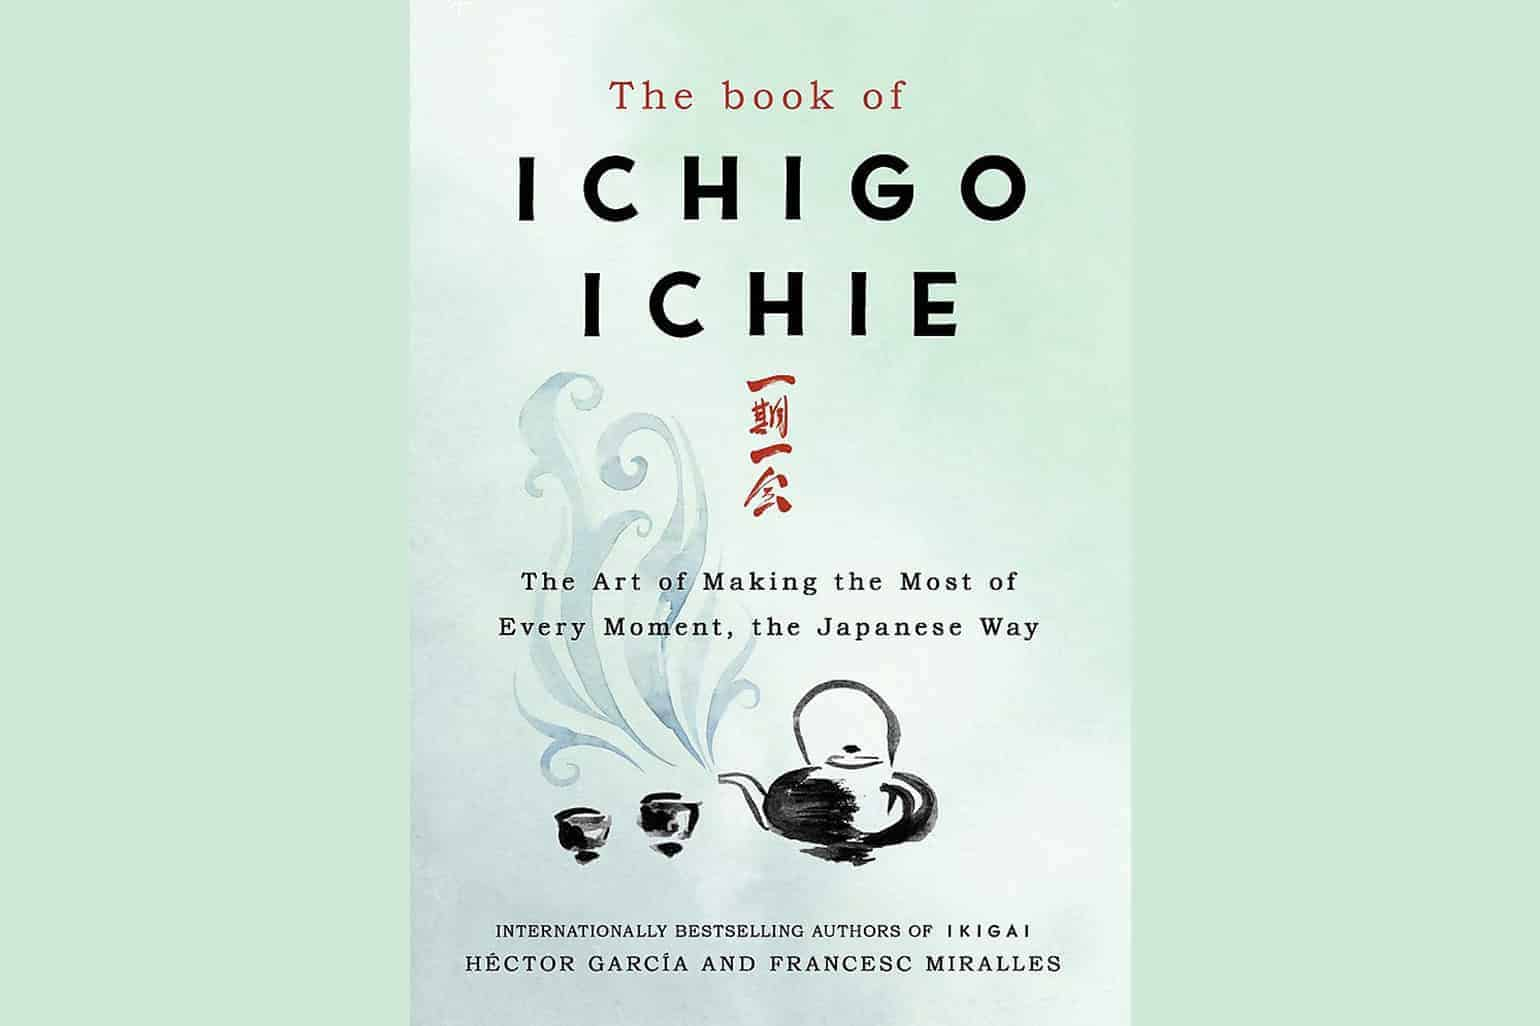 The Book Of Ichigo Ichie The Art Of Making The Most Of Every Moment The Japanese Way Francesc Miralles Héctor García